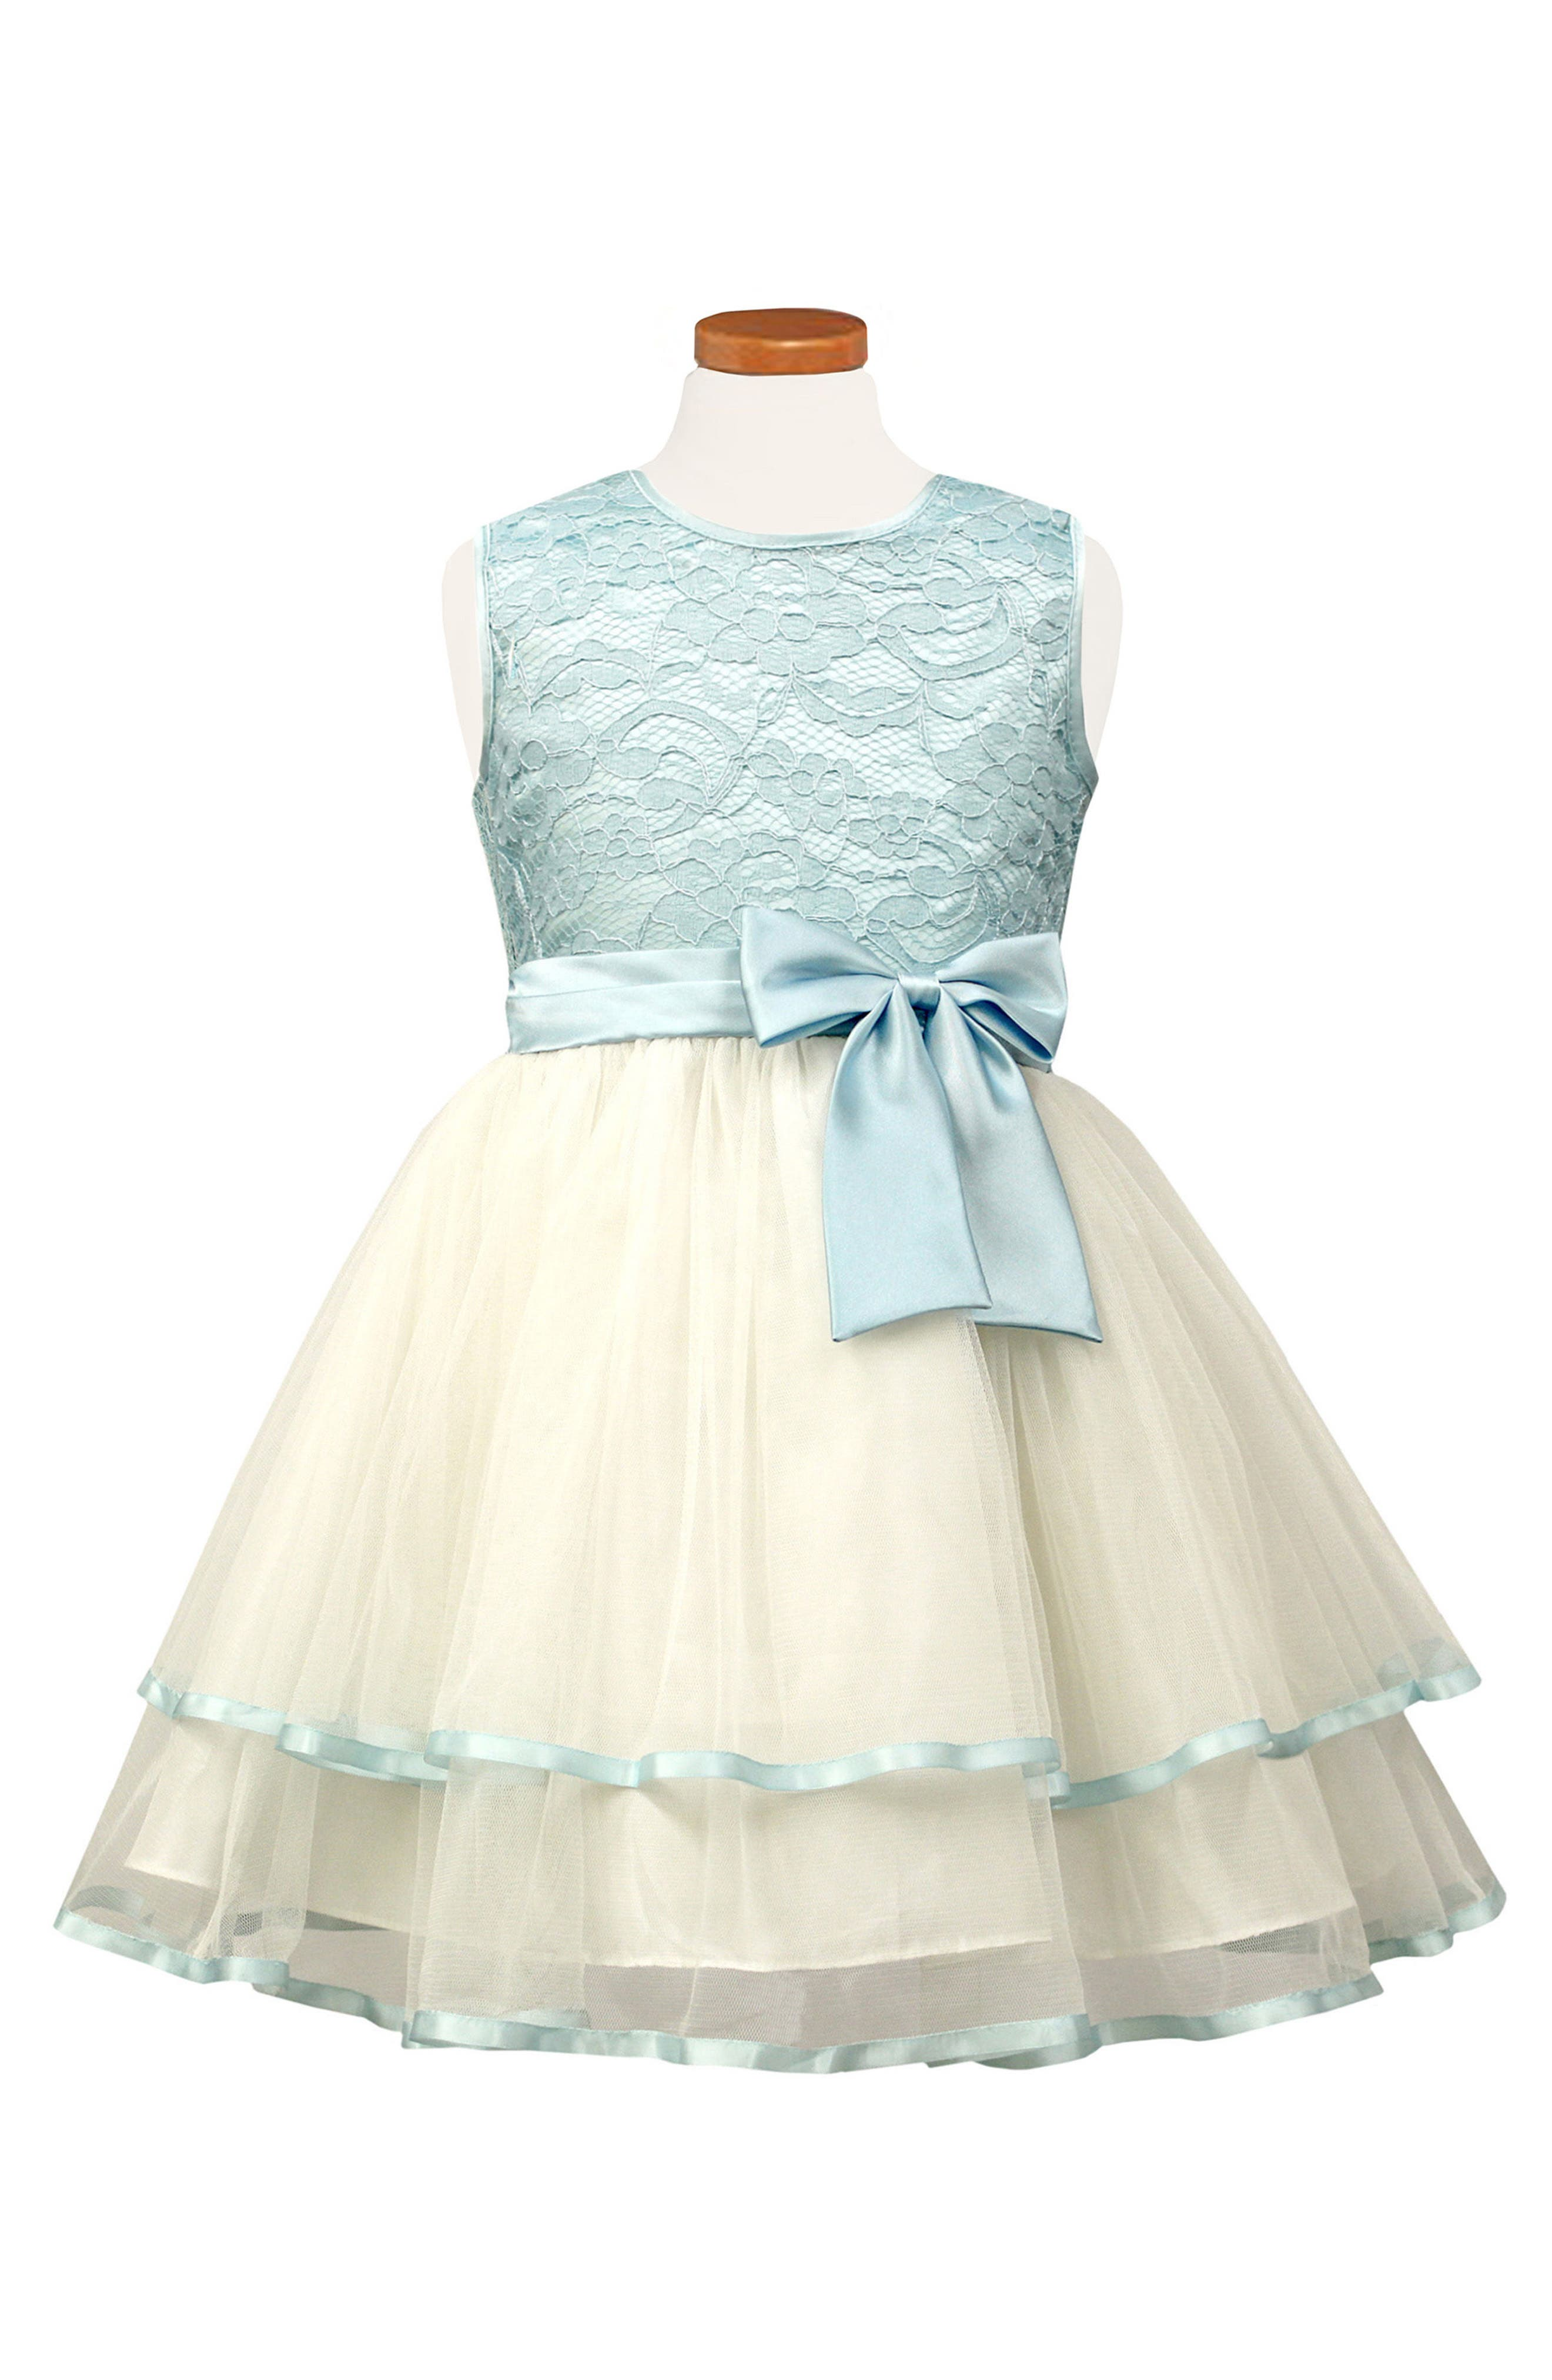 Alternate Image 1 Selected - Sorbet Tiered Lace & Tulle Dress (Toddler Girls & Little Girls)